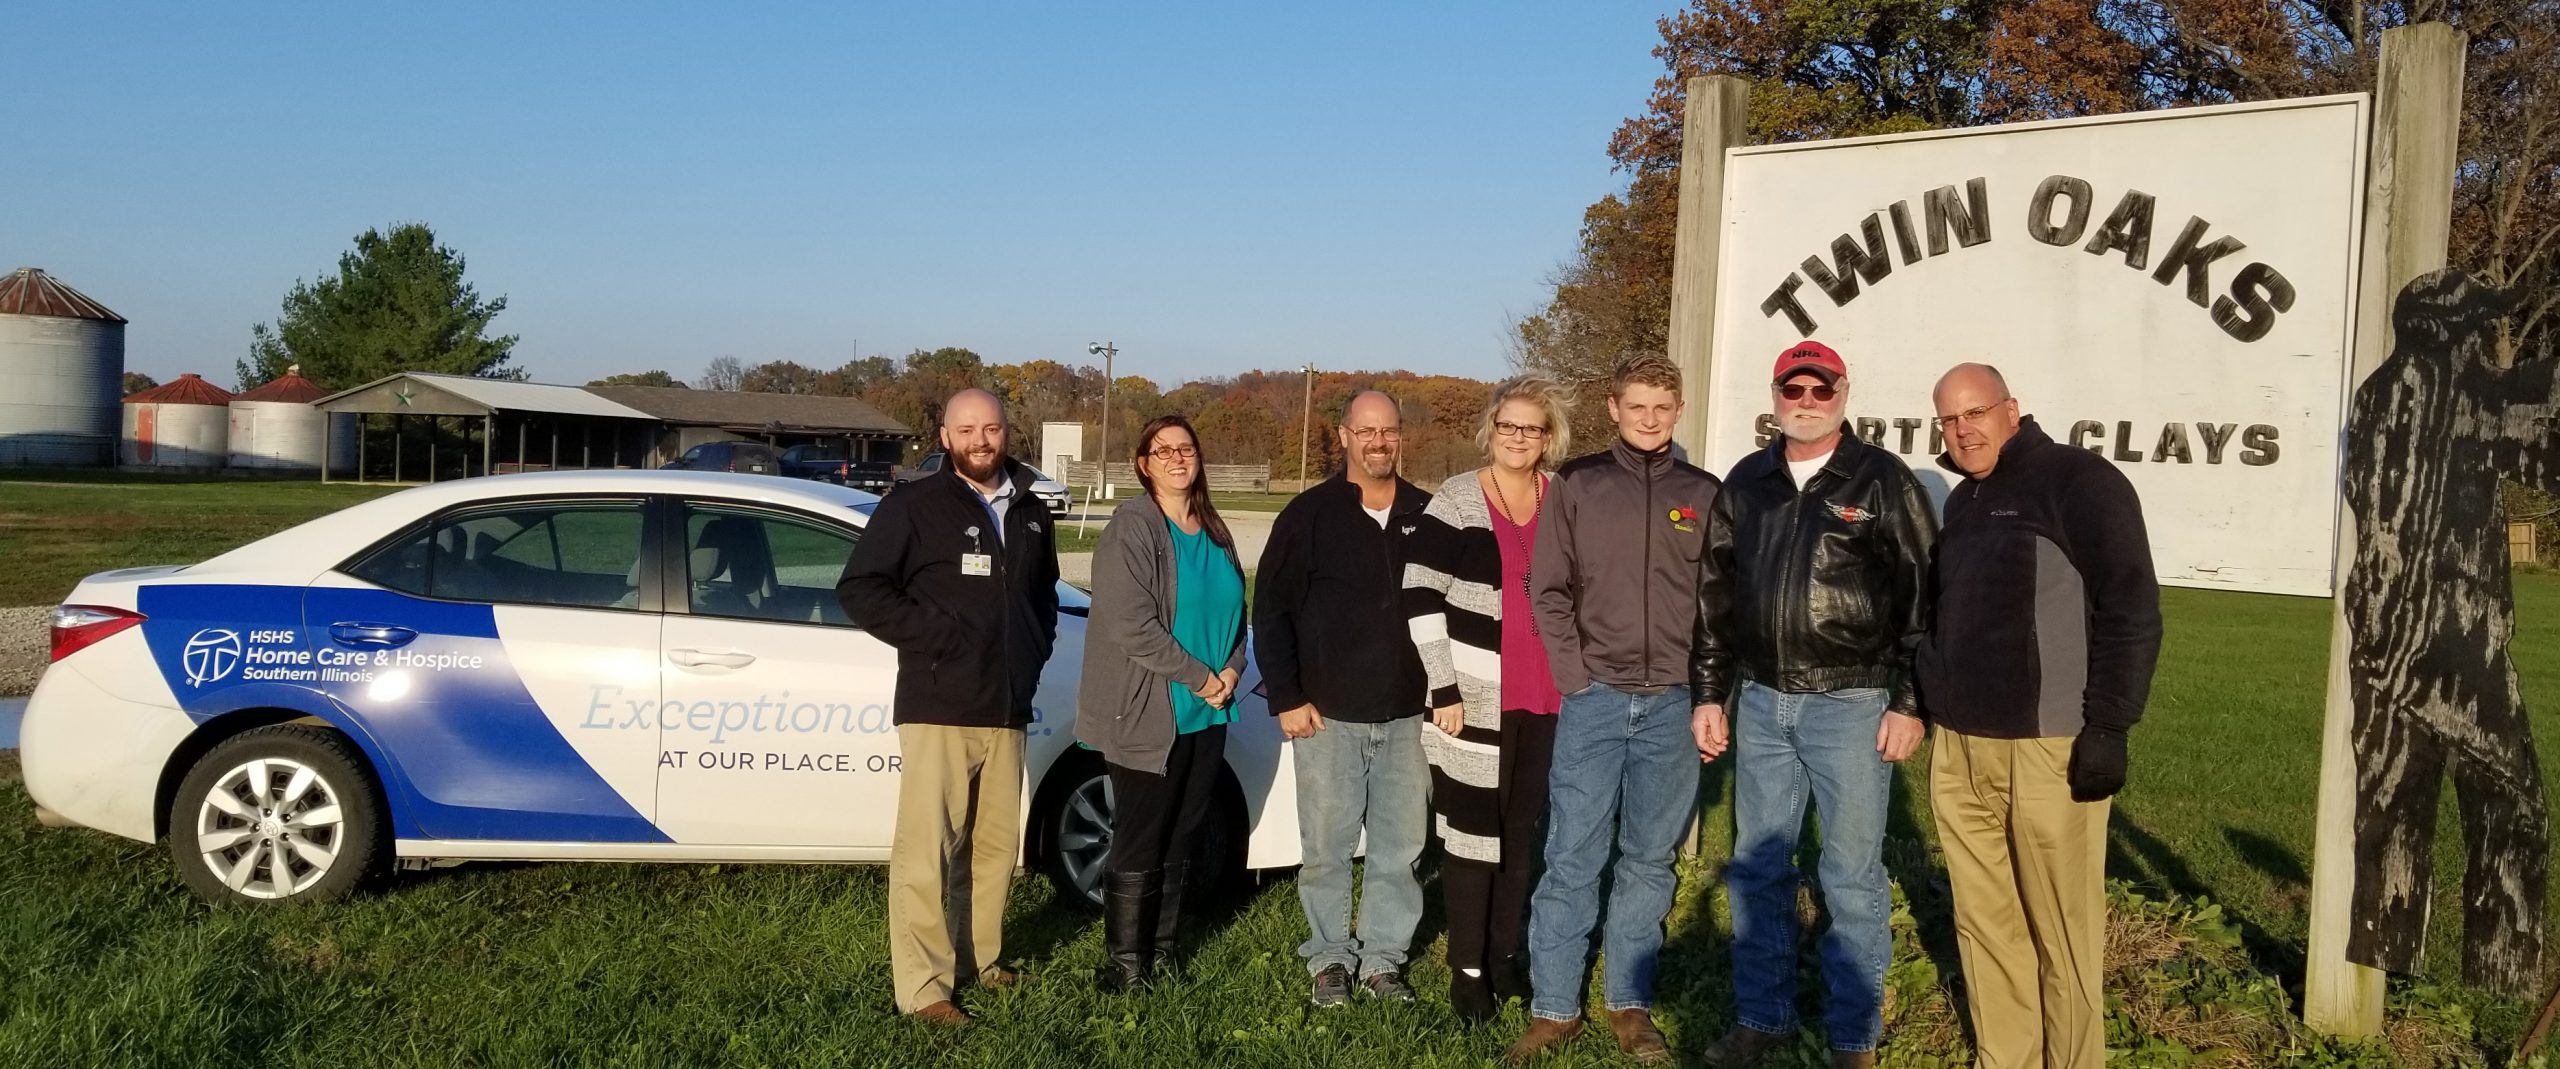 Twin Oaks Sporting Clays supports HSHS Hospice Southern Illinois